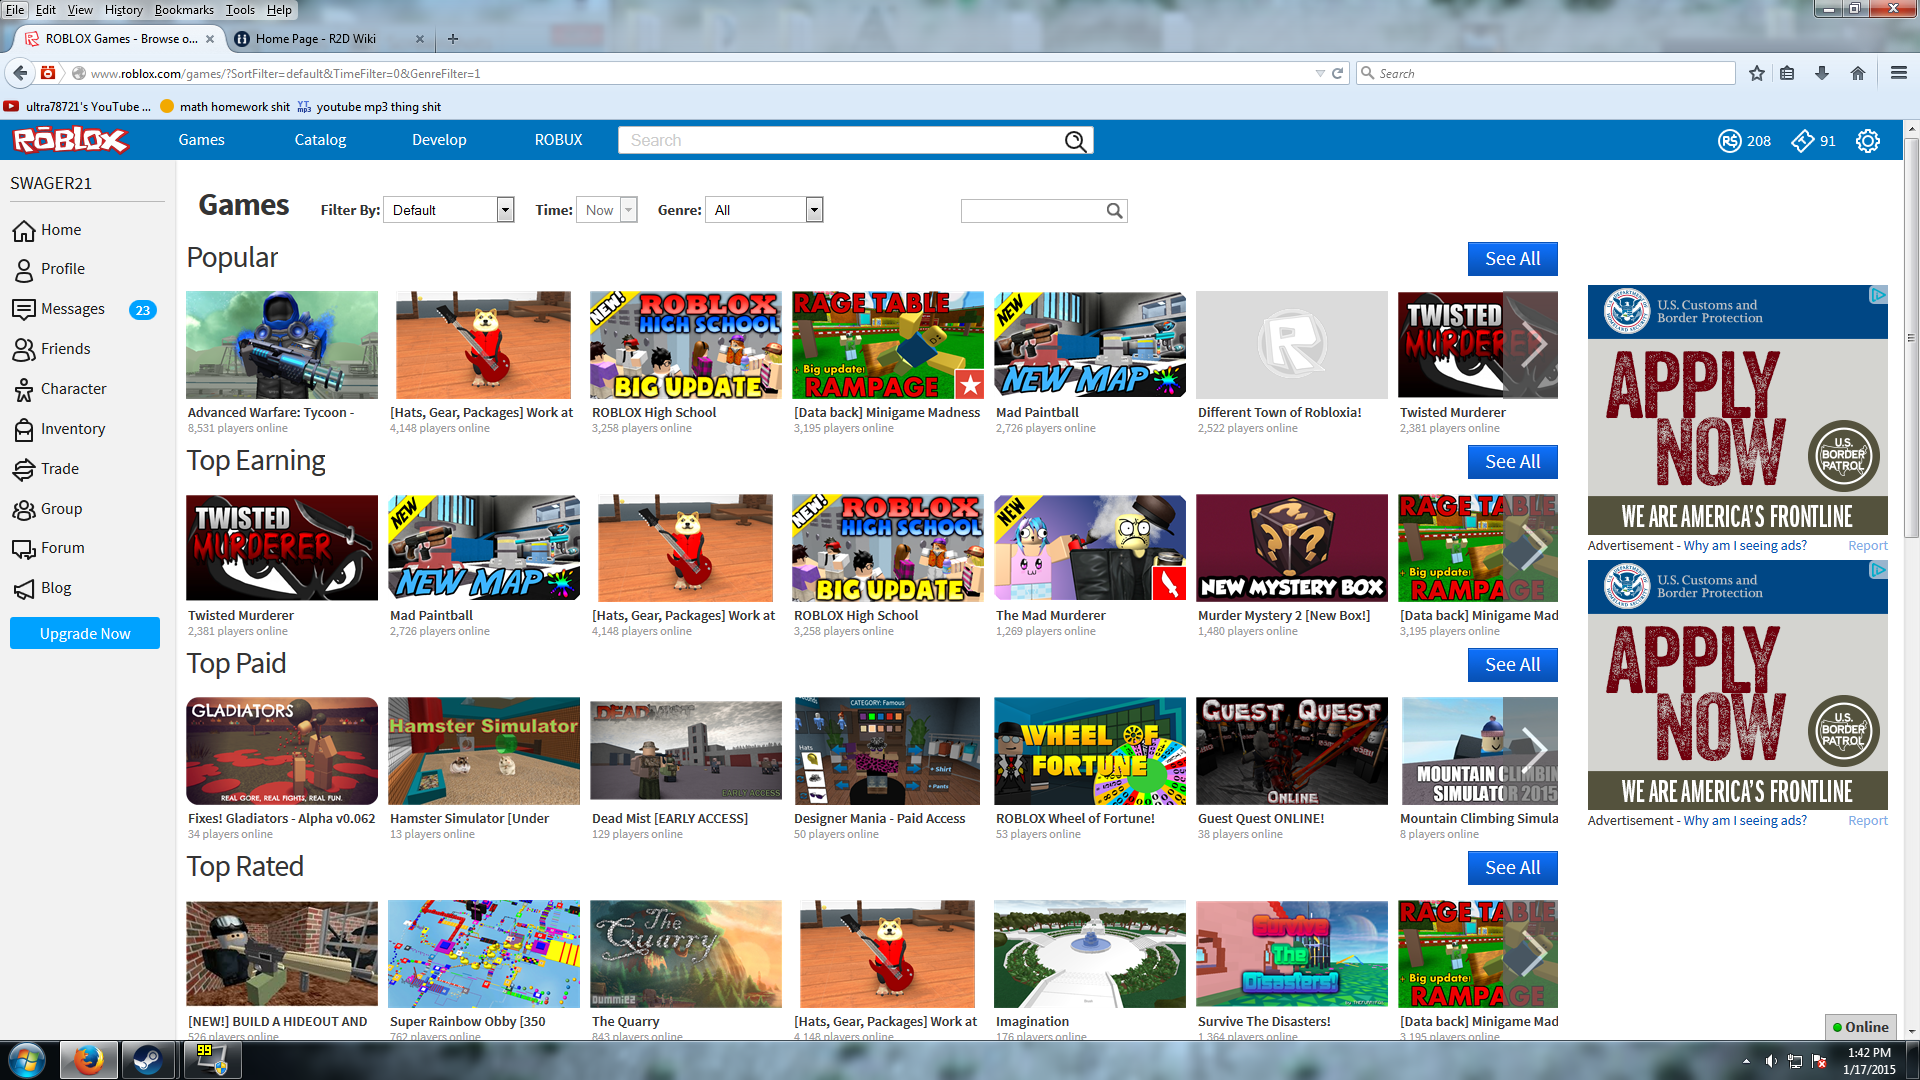 How To Make A Front Page Game On Roblox - Get Your Game On The Roblox Front Page Roblox Login